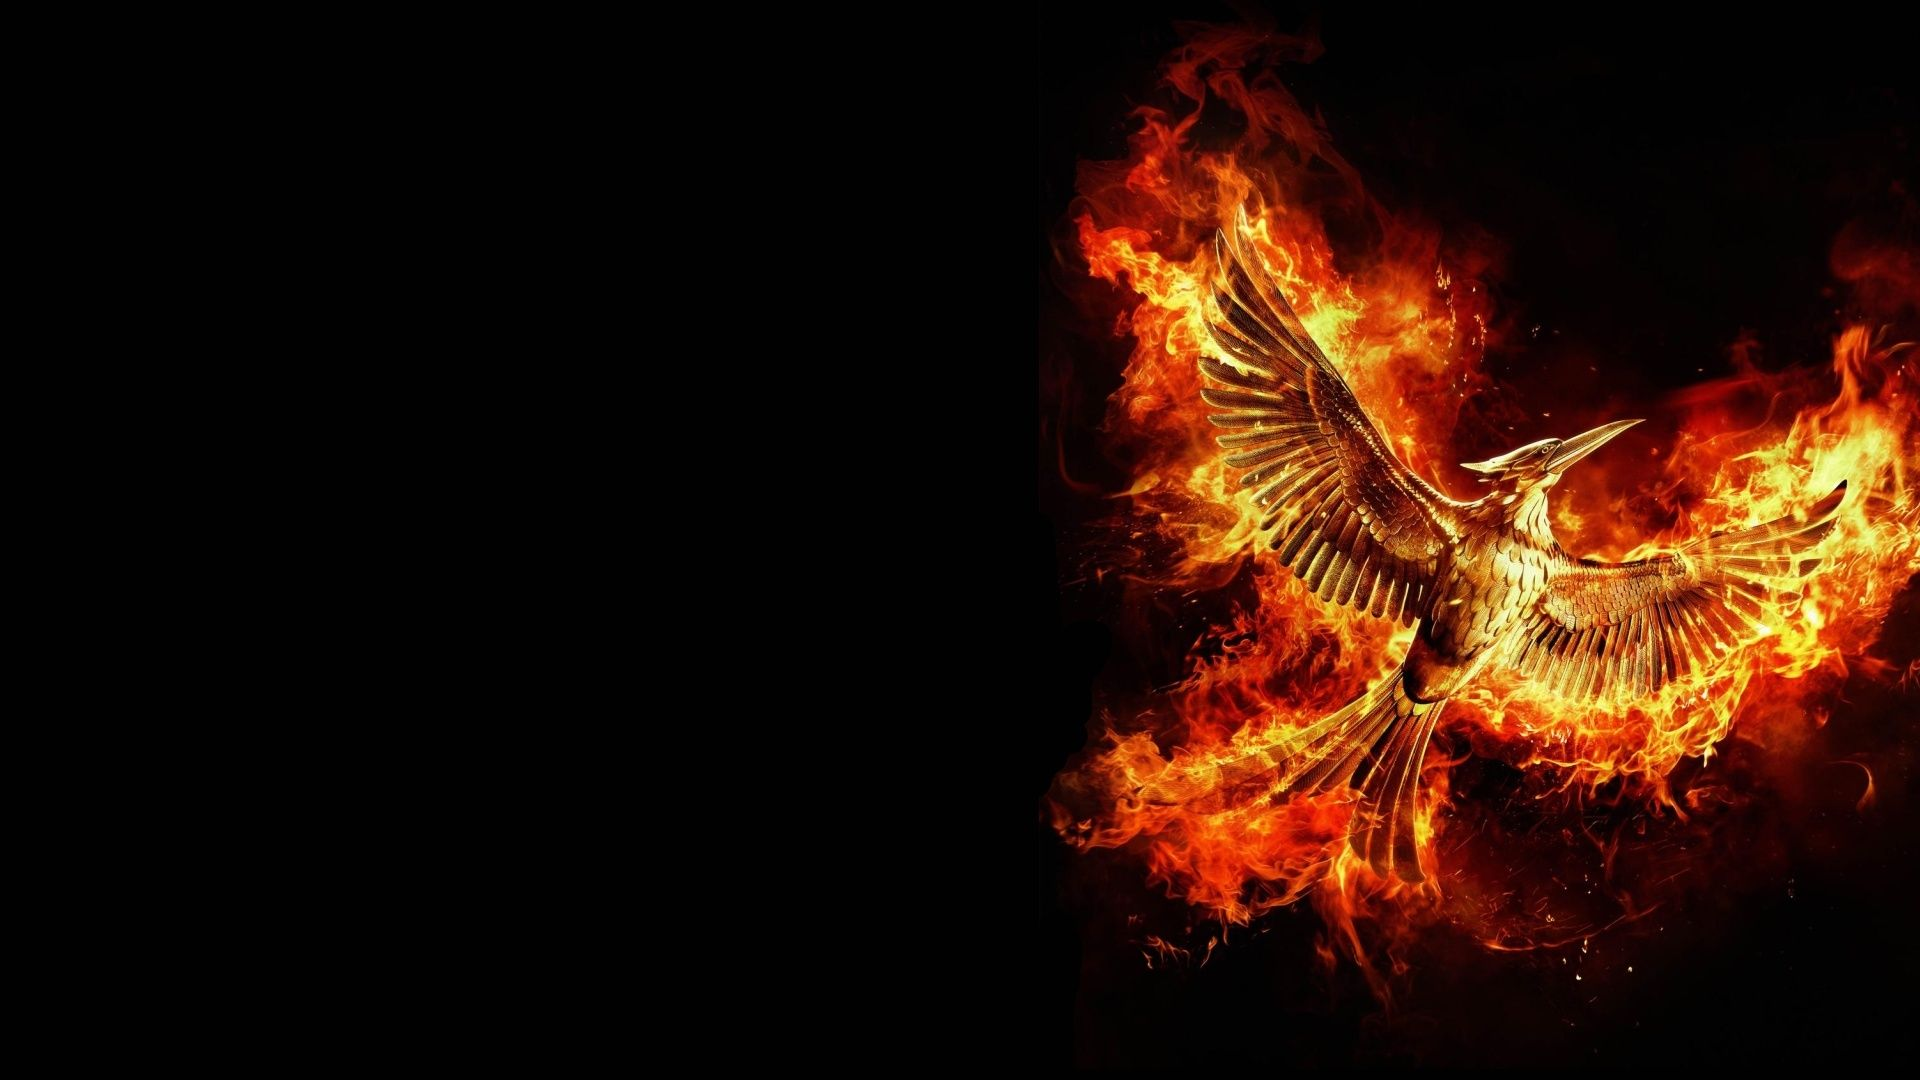 Hunger Games Wallpapers Hd 1024 768 Hunger Games Wallpaper